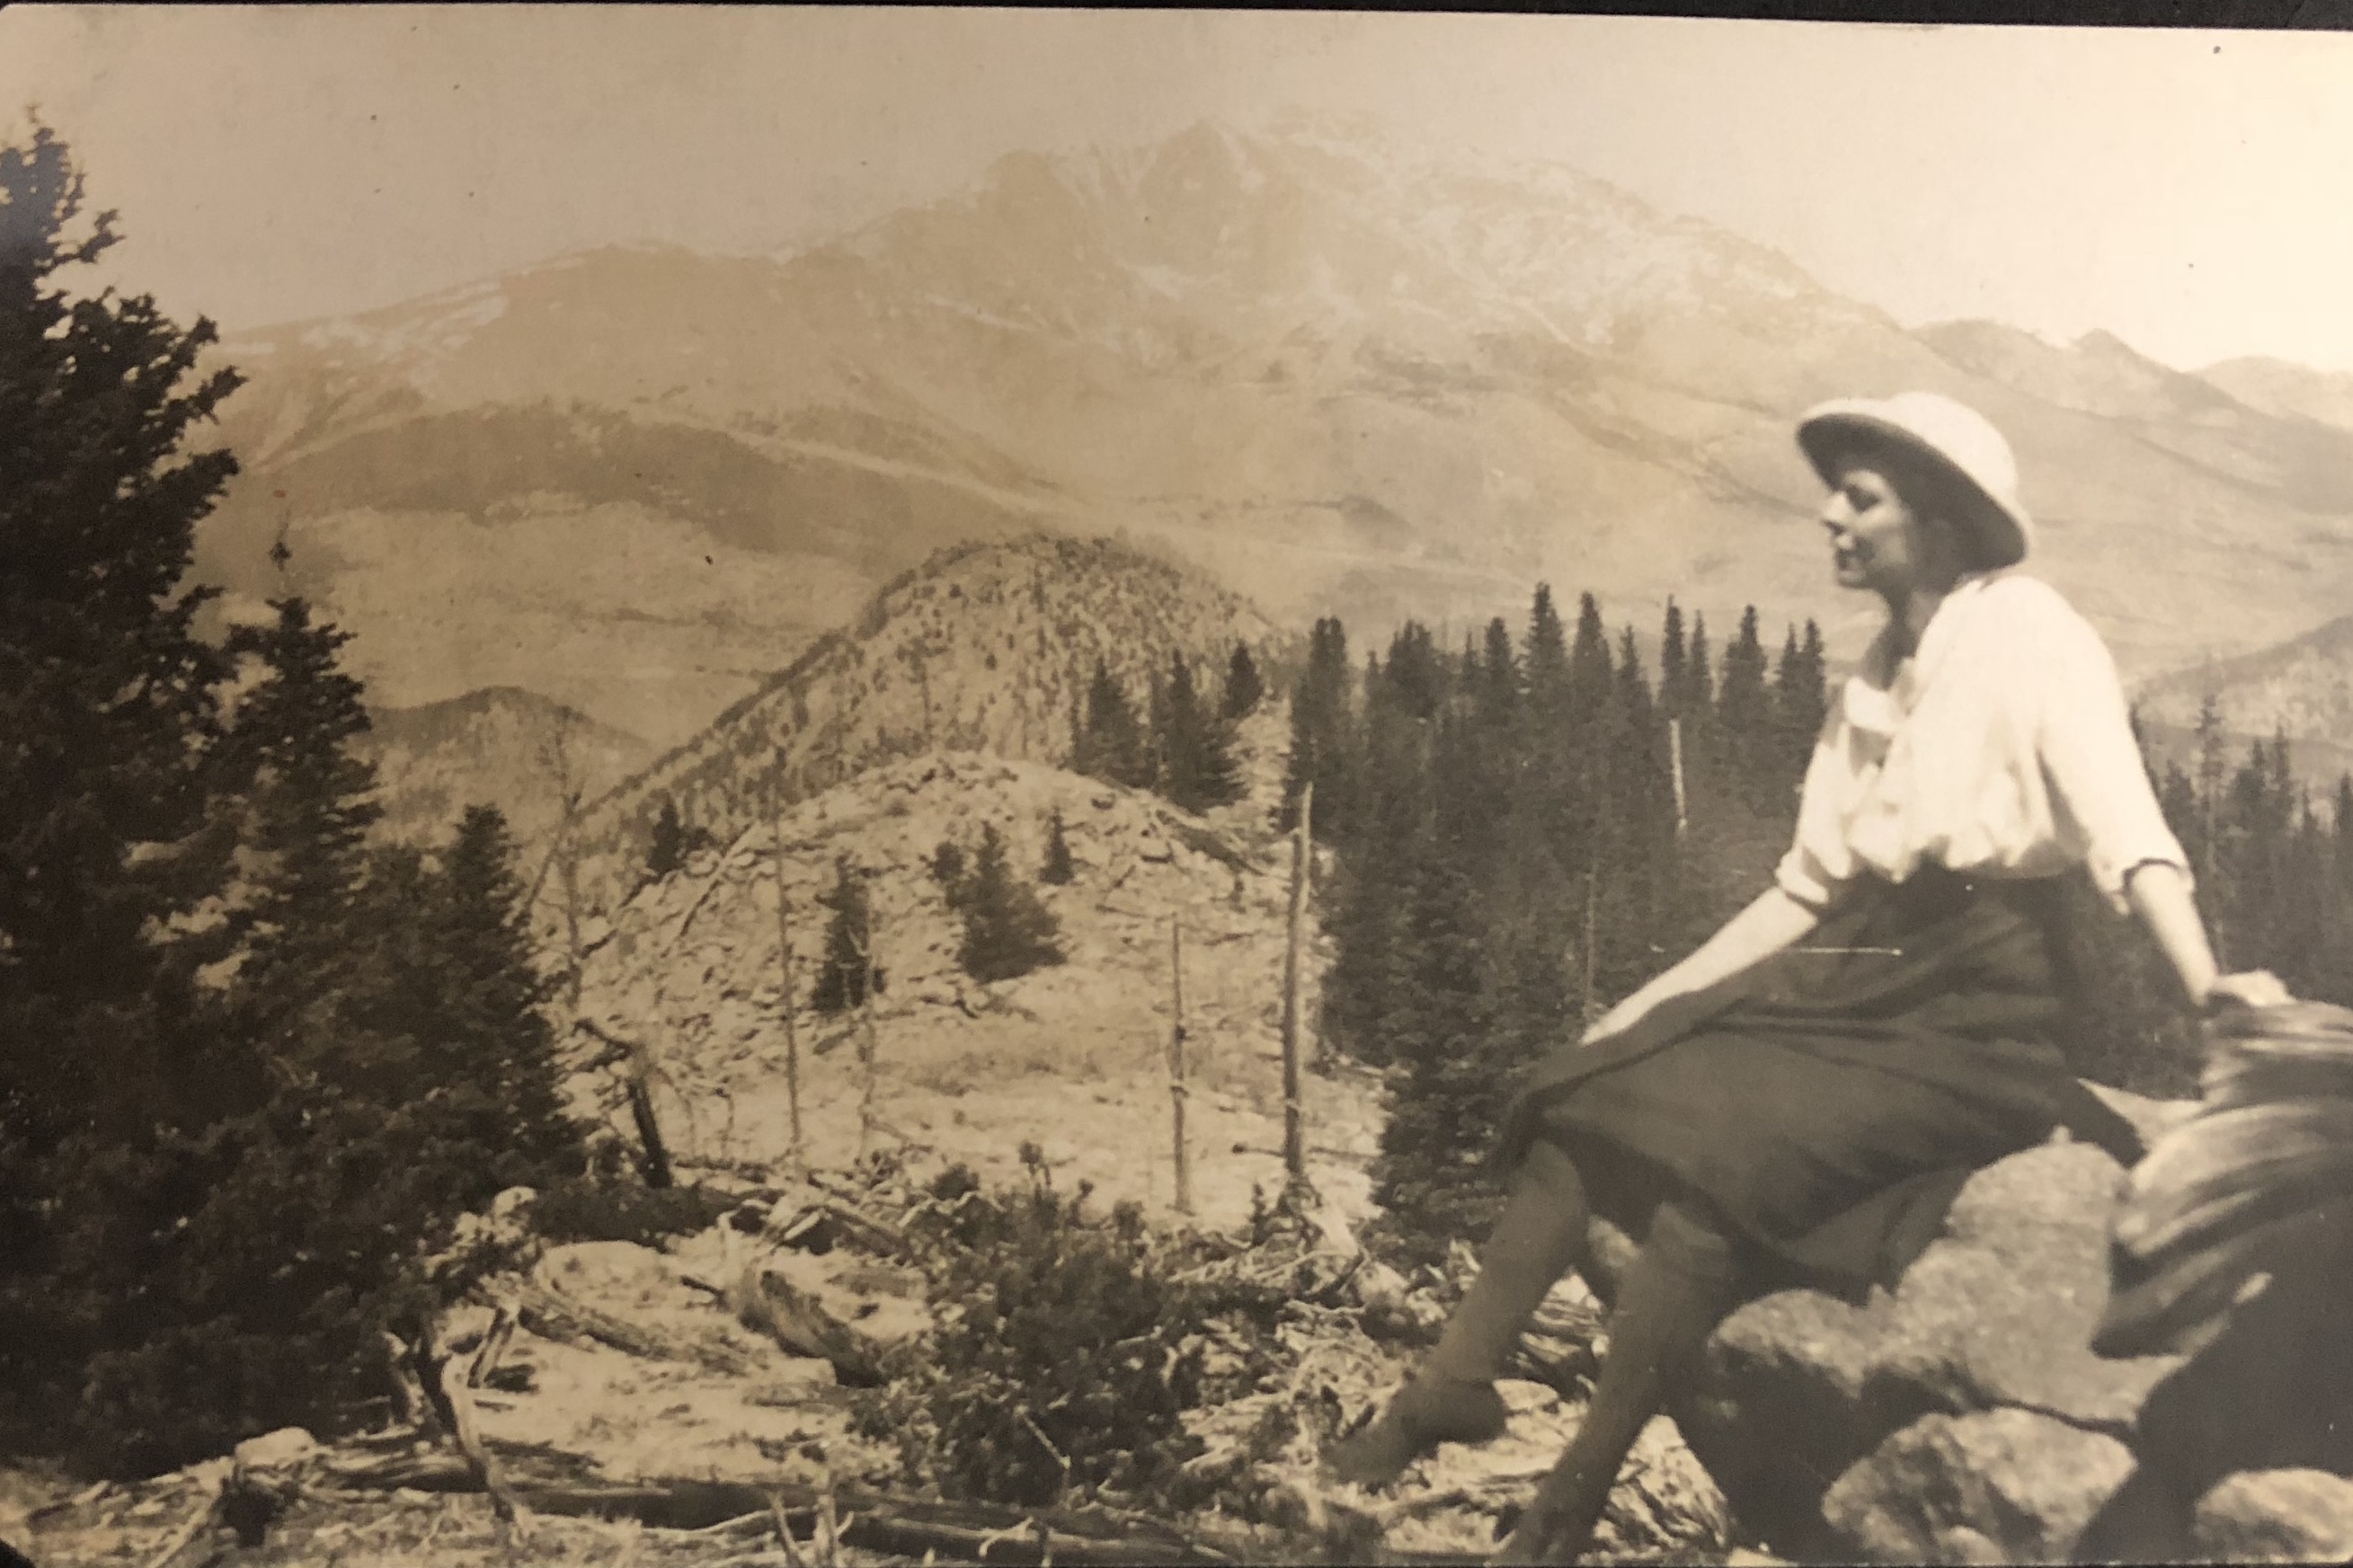 Woman in early 1900 dress at top of a mountain